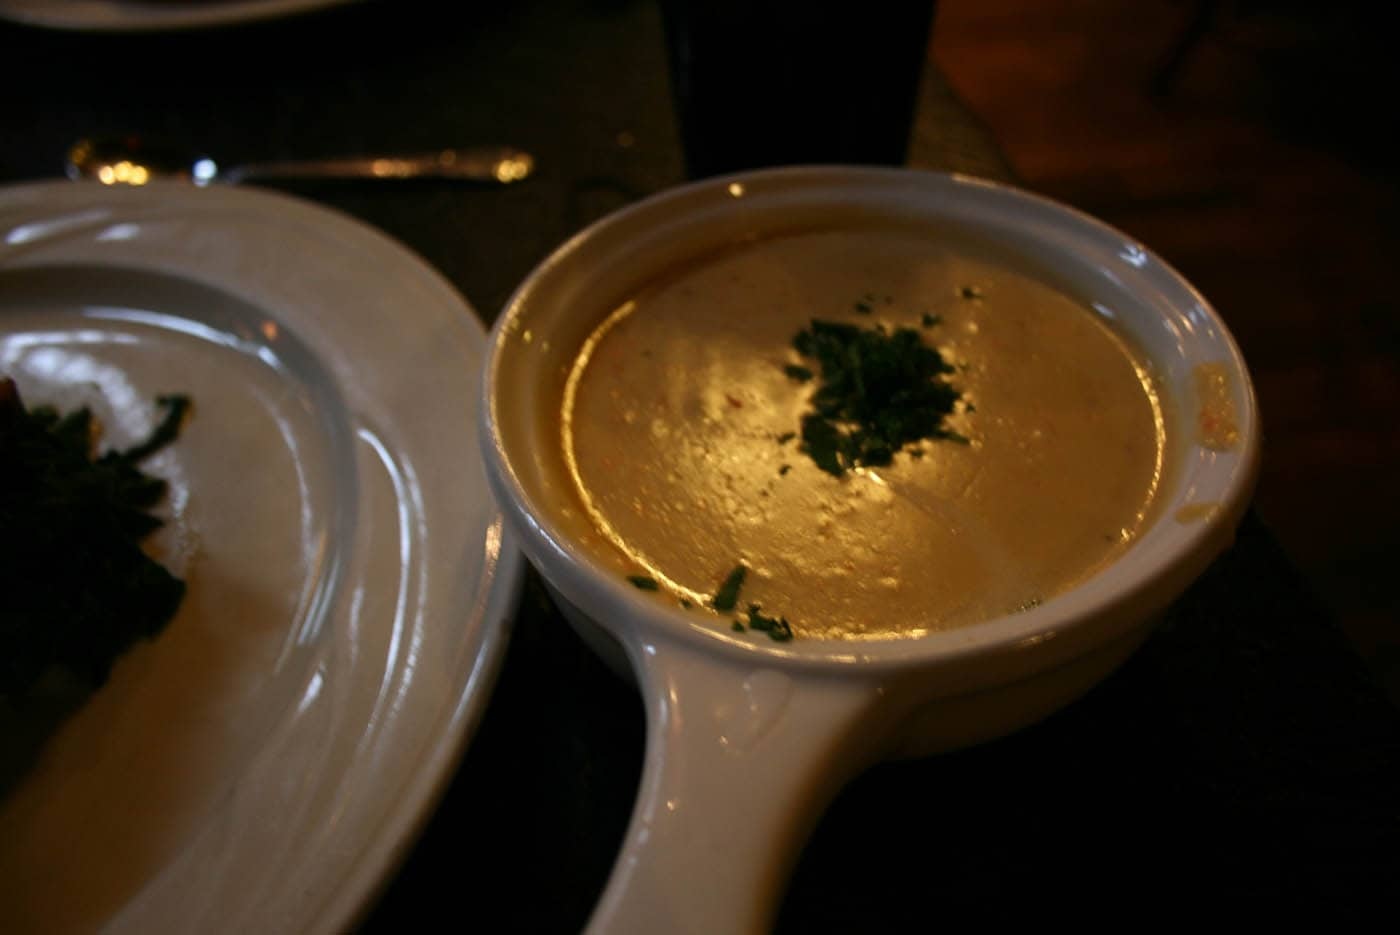 Stilton Cheese Soup at the Great Lakes Brewing Company restaurant in Cleveland, Ohio.